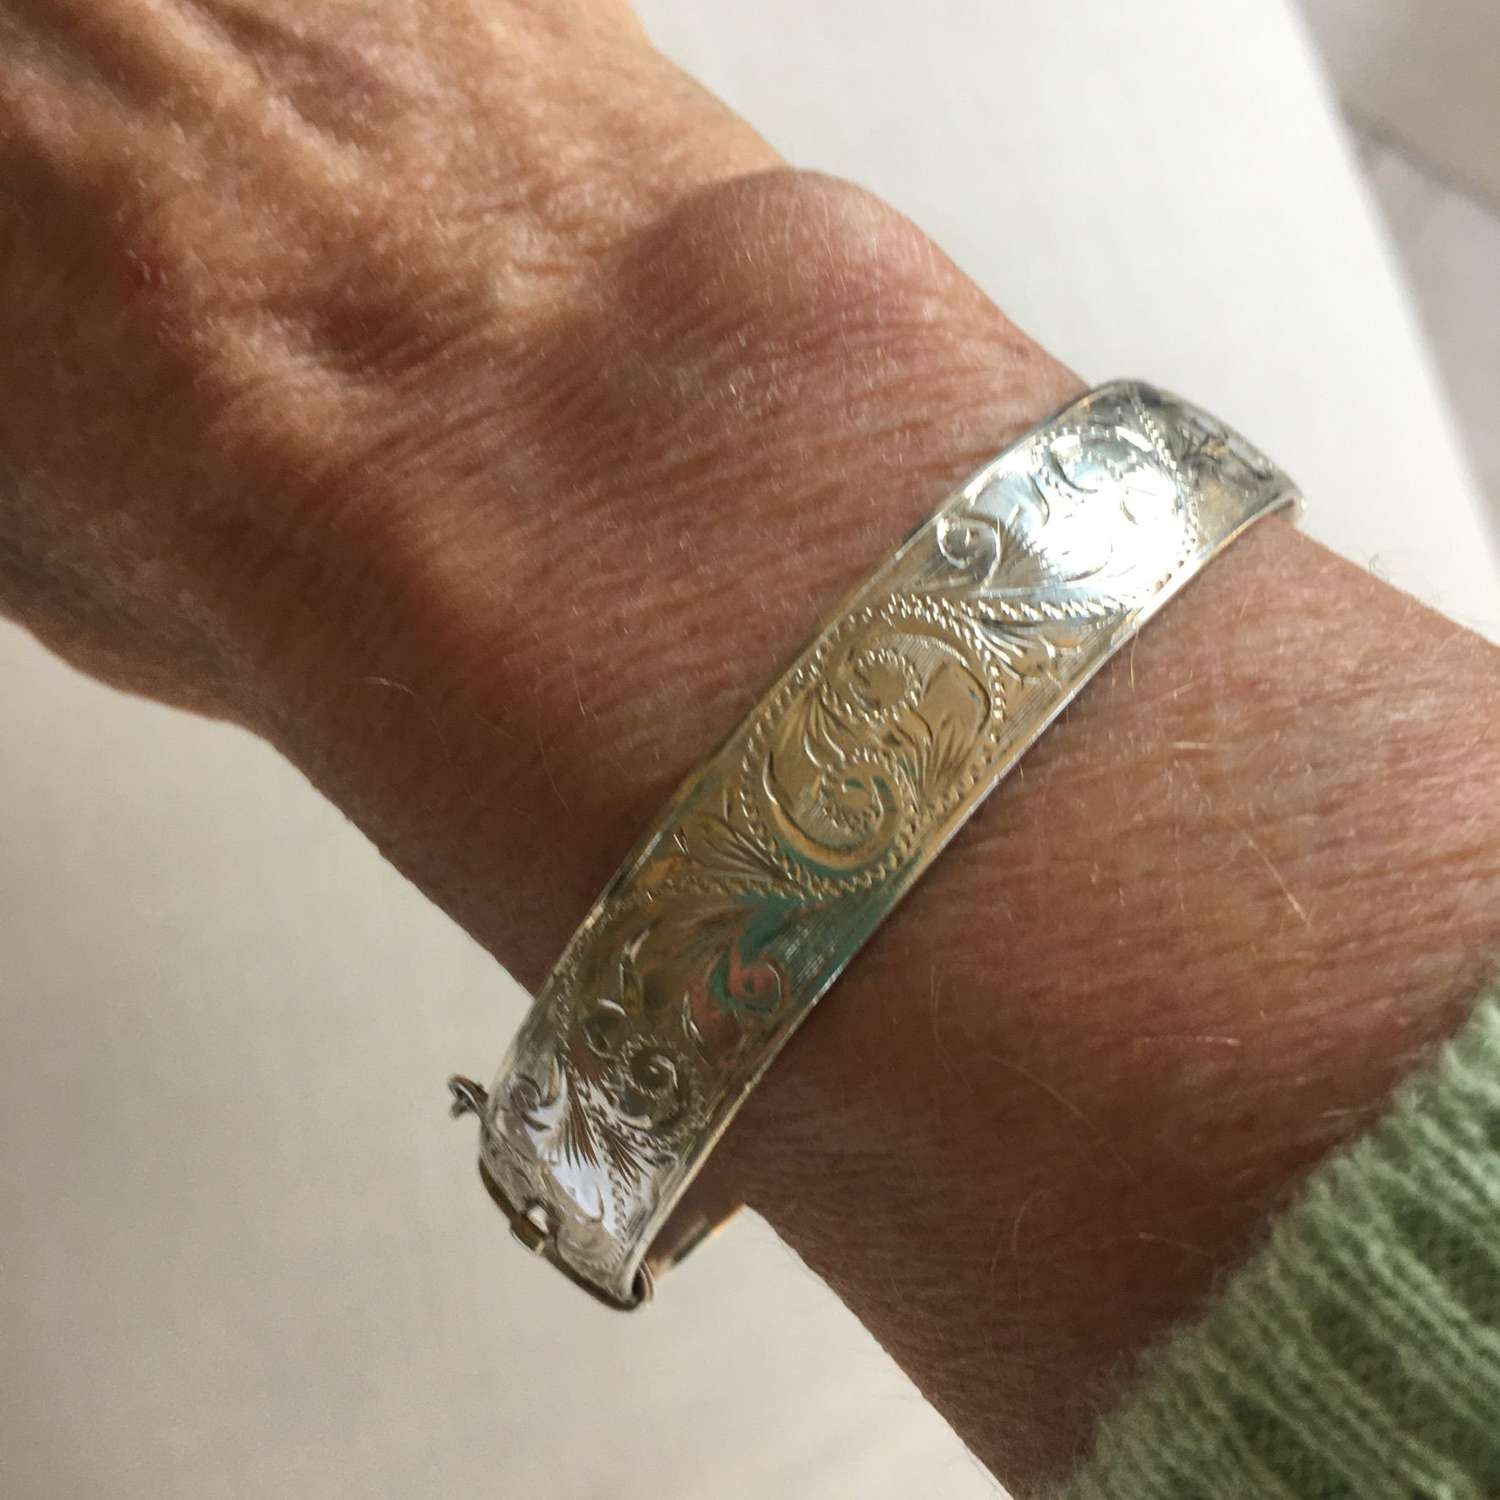 Vintage 1960s hallmarked solid silver bangle with engraved pattern